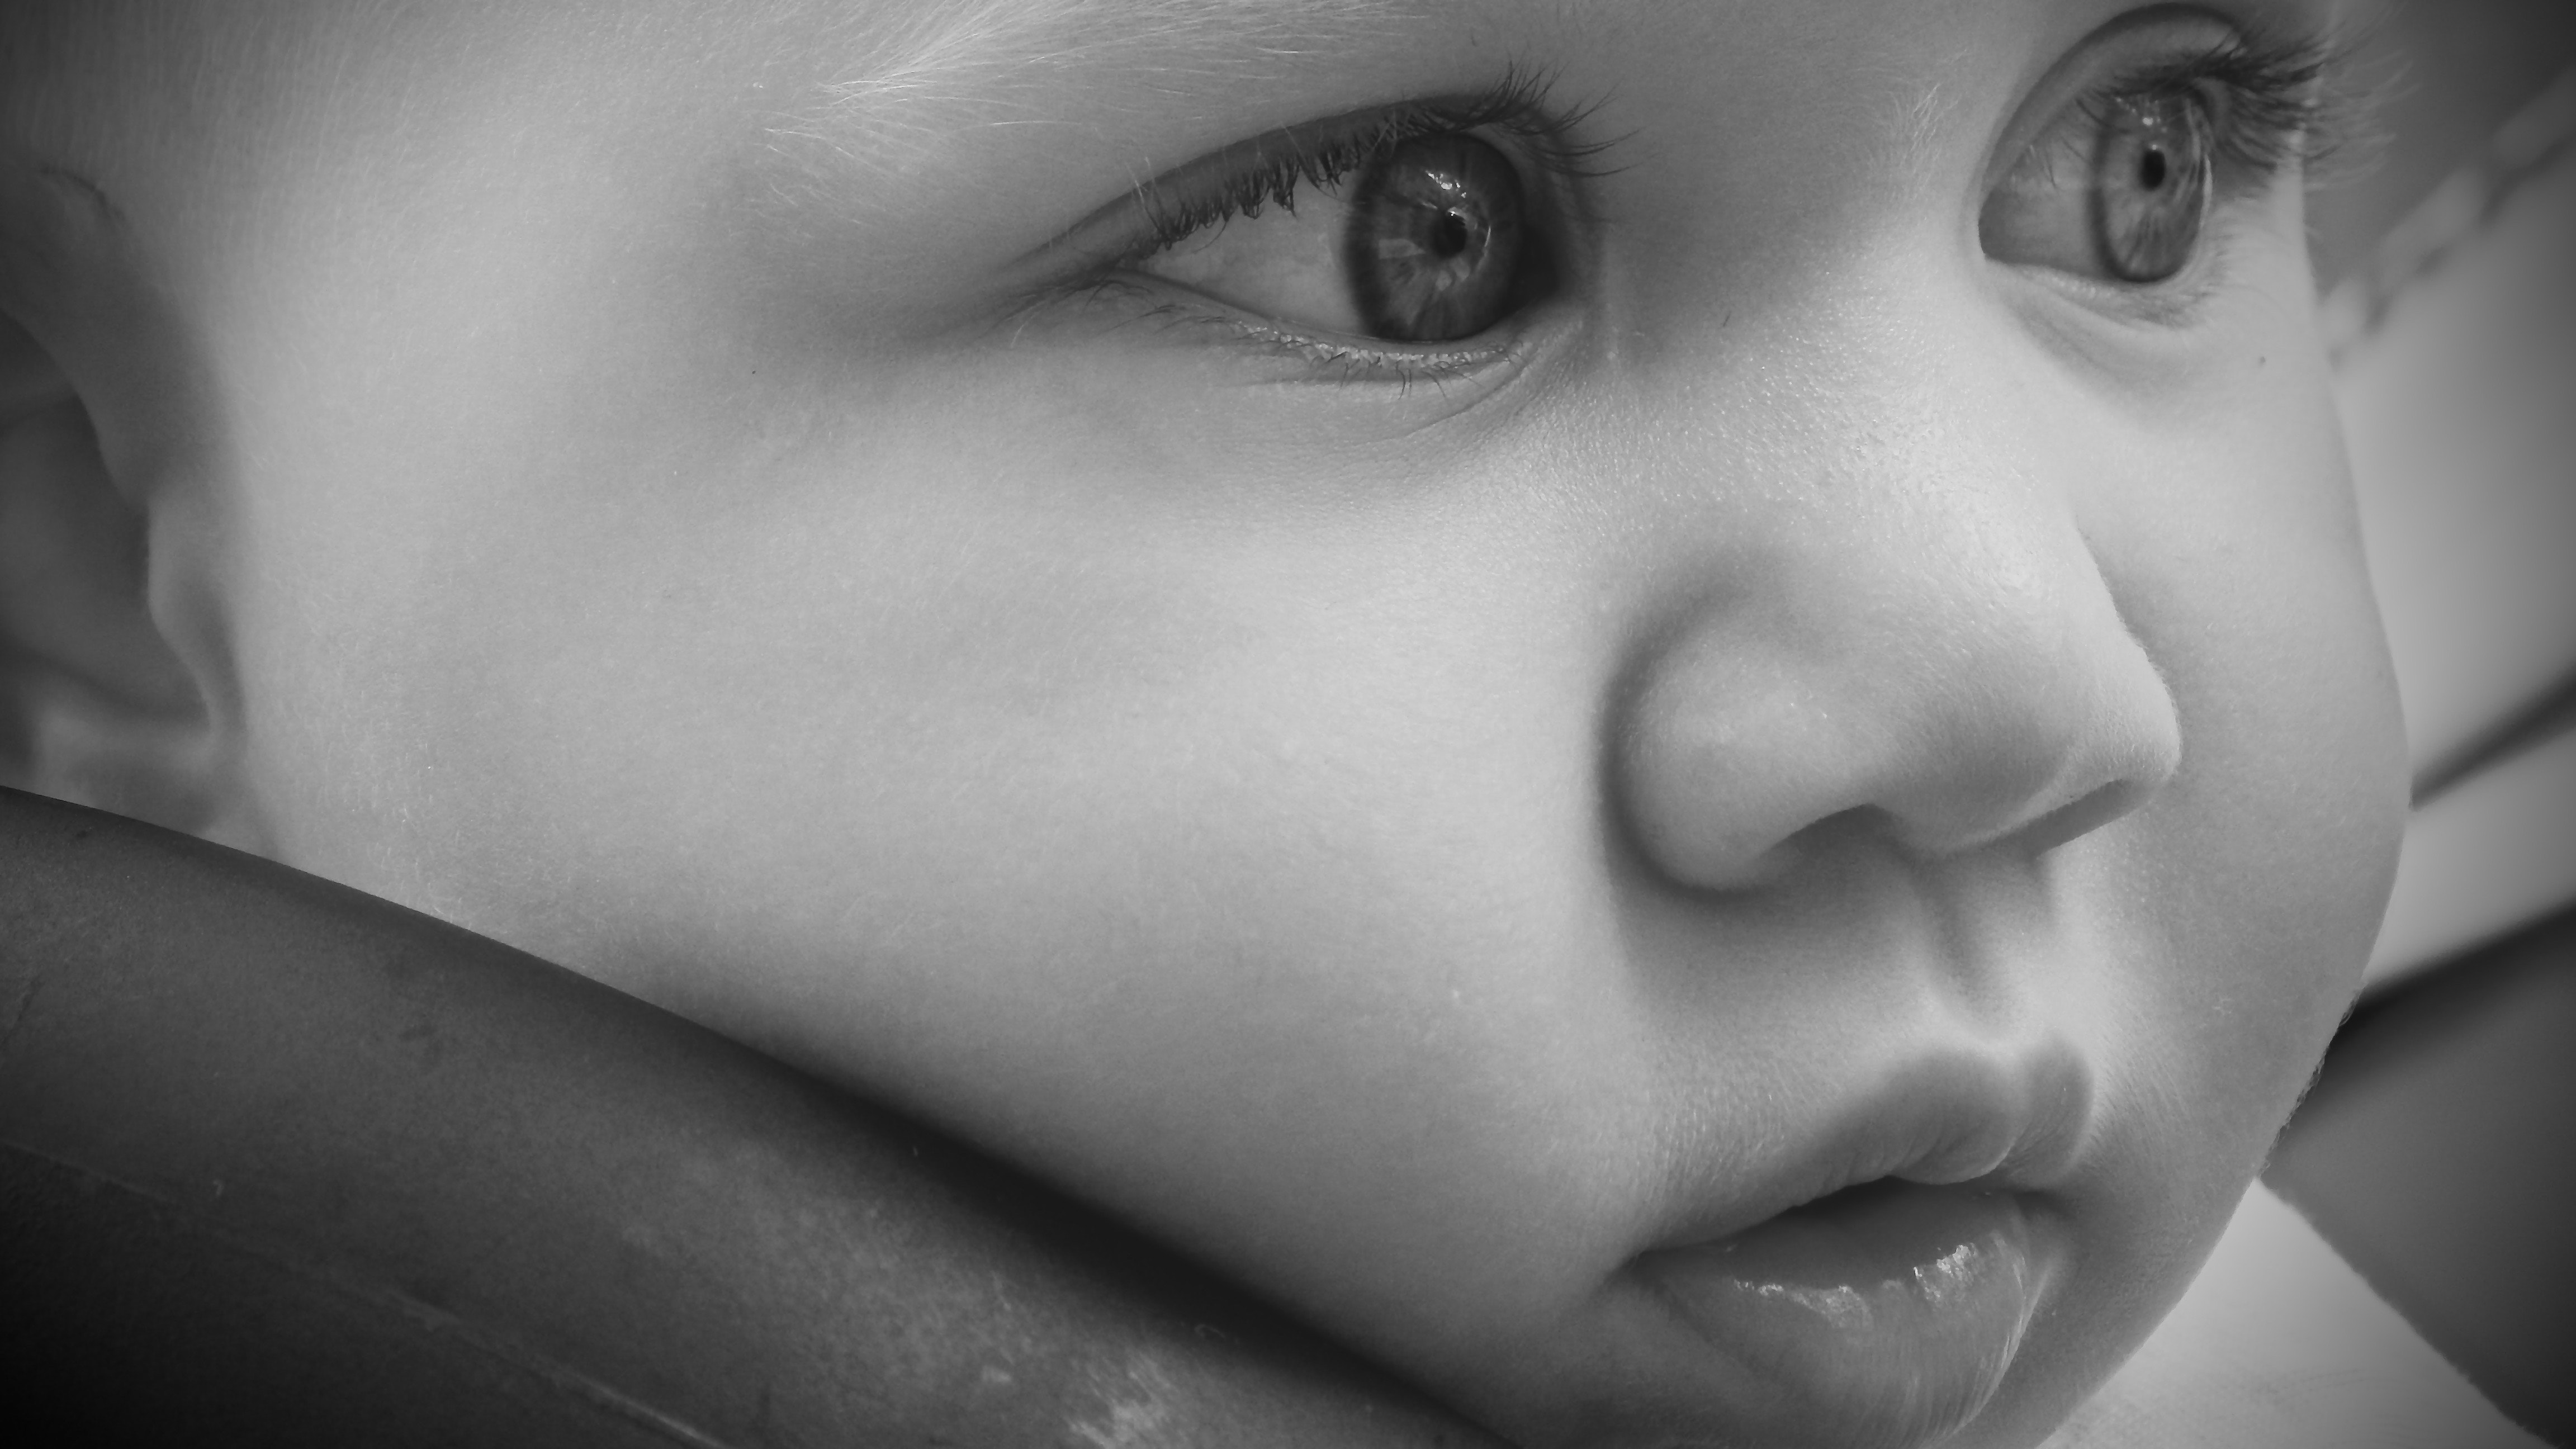 Baby Covered by White Towel Grayscale Photography